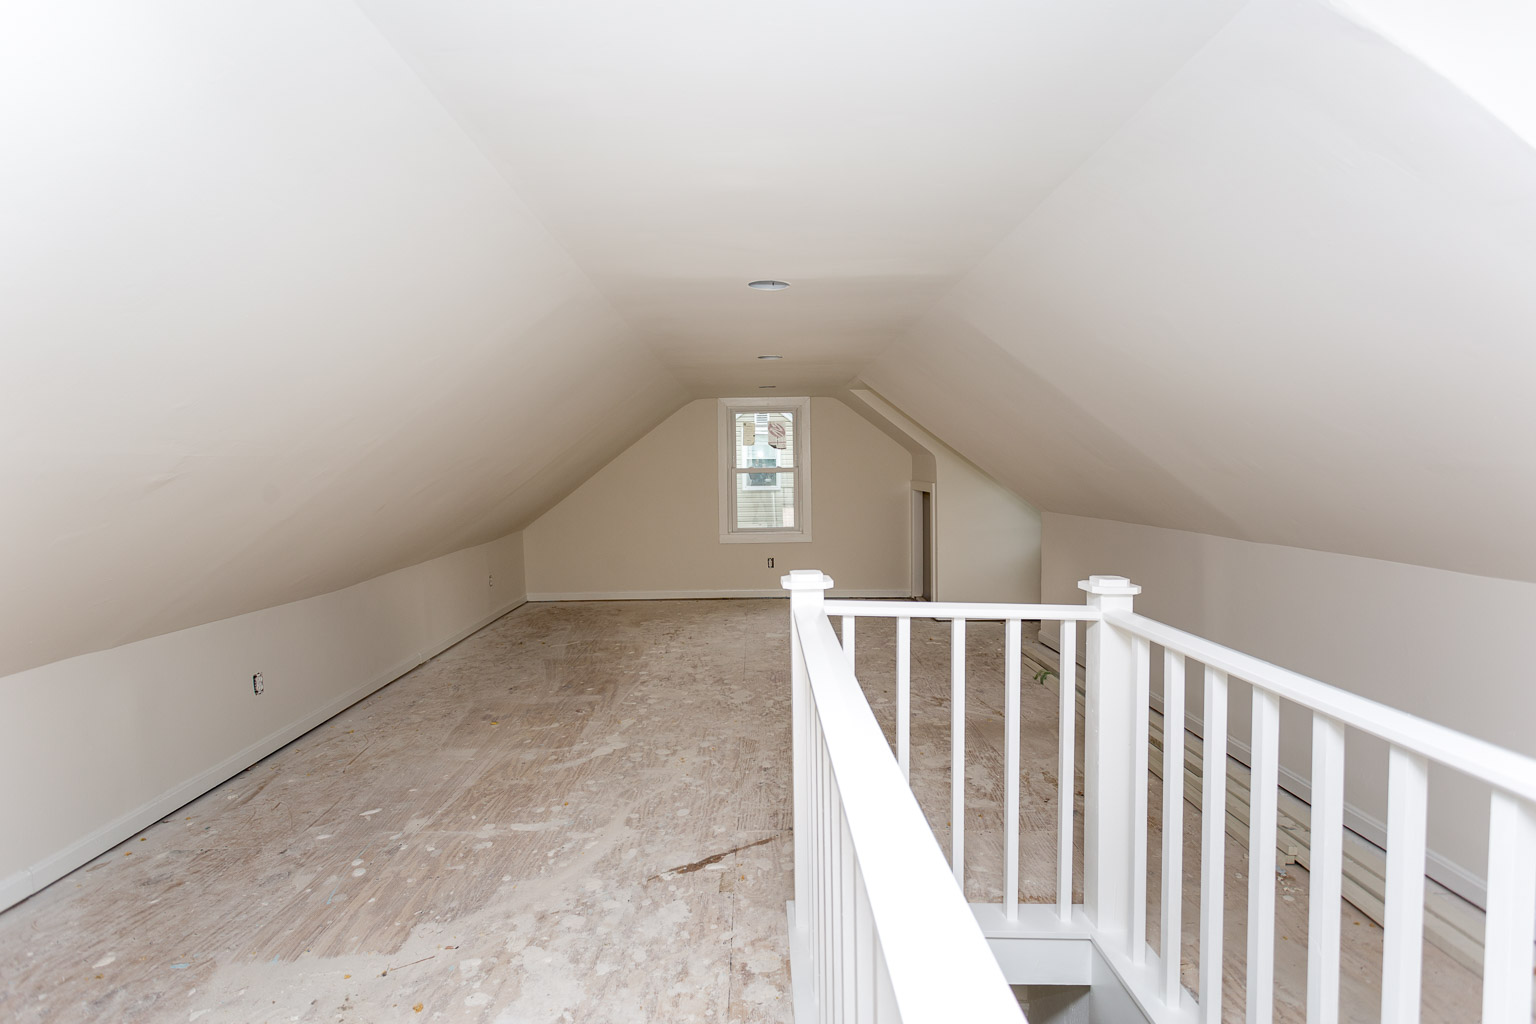 This is the after photo. My new contractor added recessed lighting, replaced the guard rail, repaired the drywall, and primed/painted. All that's left is installing the carpet.